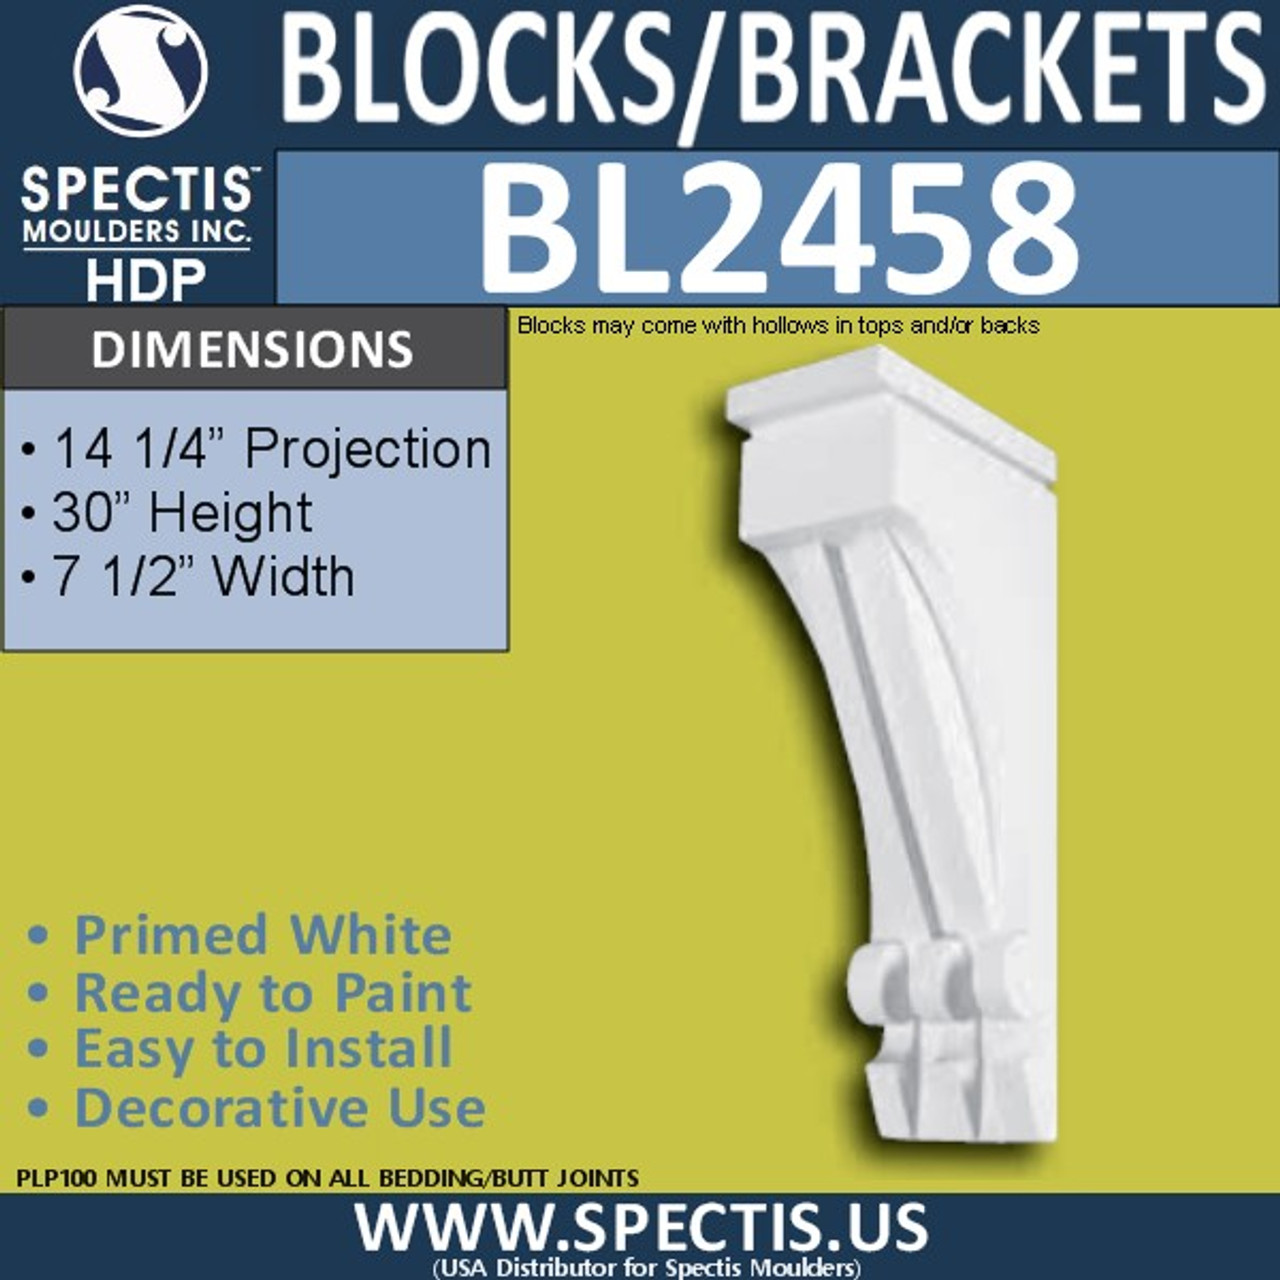 "BL2458 Eave Block or Bracket 7.5""W x 30""H x 14.5"" P"